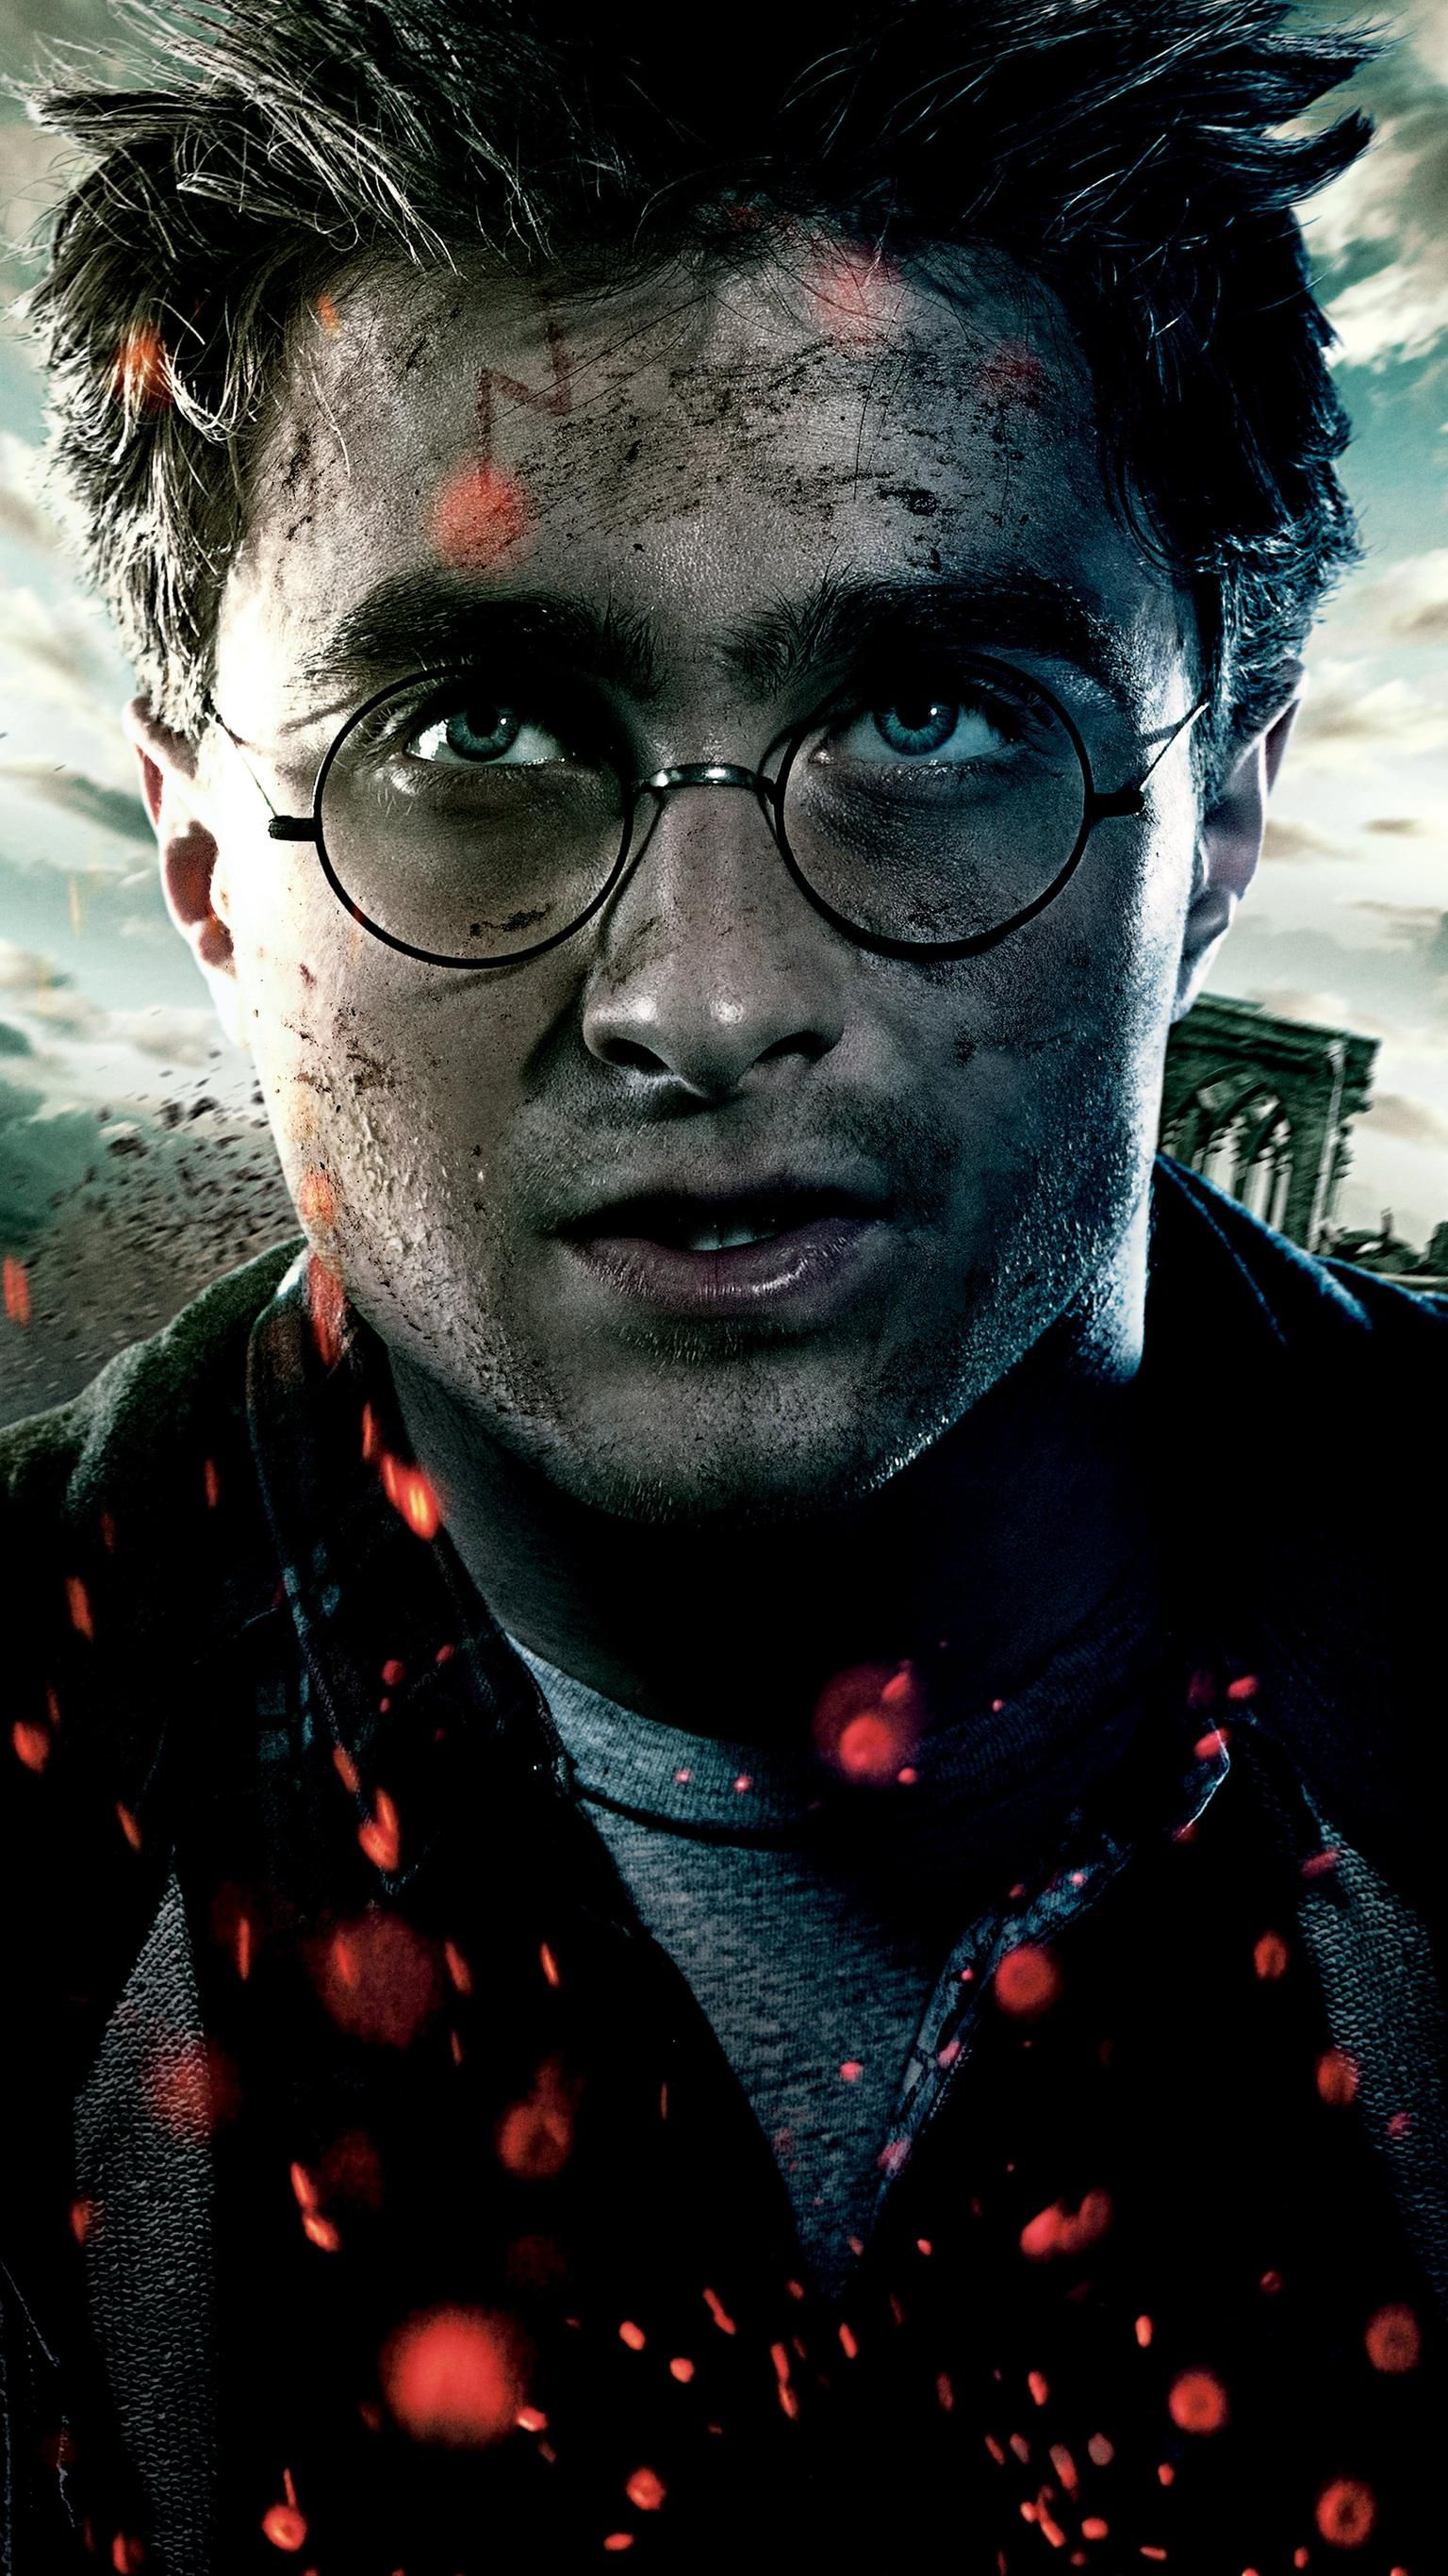 Harry Potter And The Deathly Hallows Part 2 2011 Phone Wallpaper Moviemania Harry Potter Portraits Harry Potter Wallpaper Harry Potter Deathly Hallows